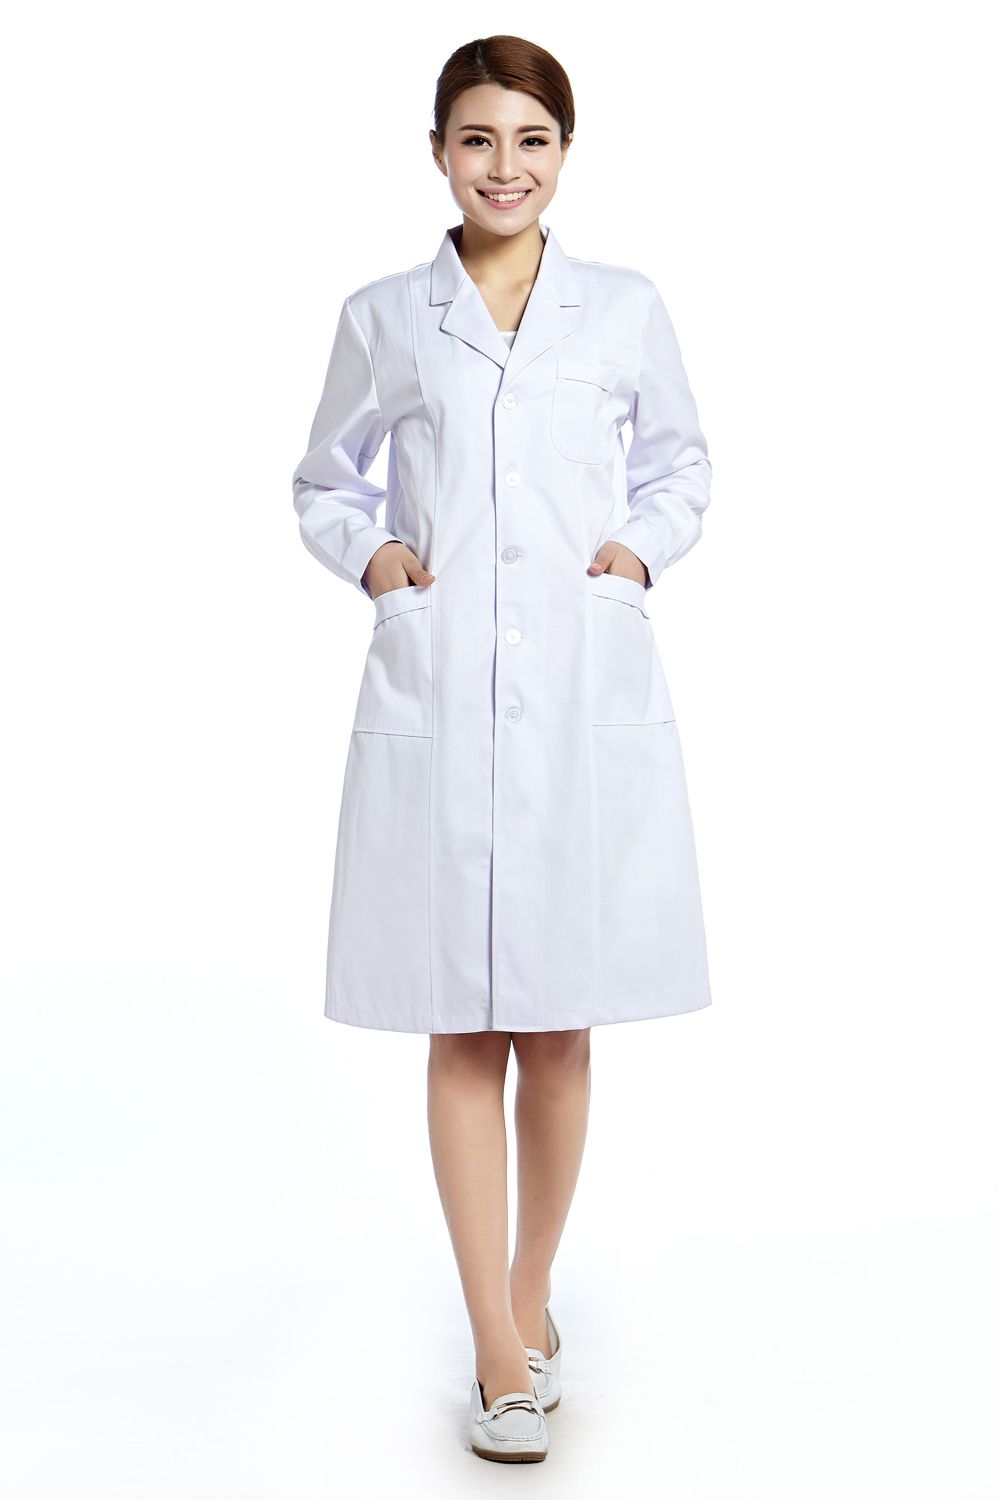 Find More Lab Coats Information About 2015 Oem Lab Coat